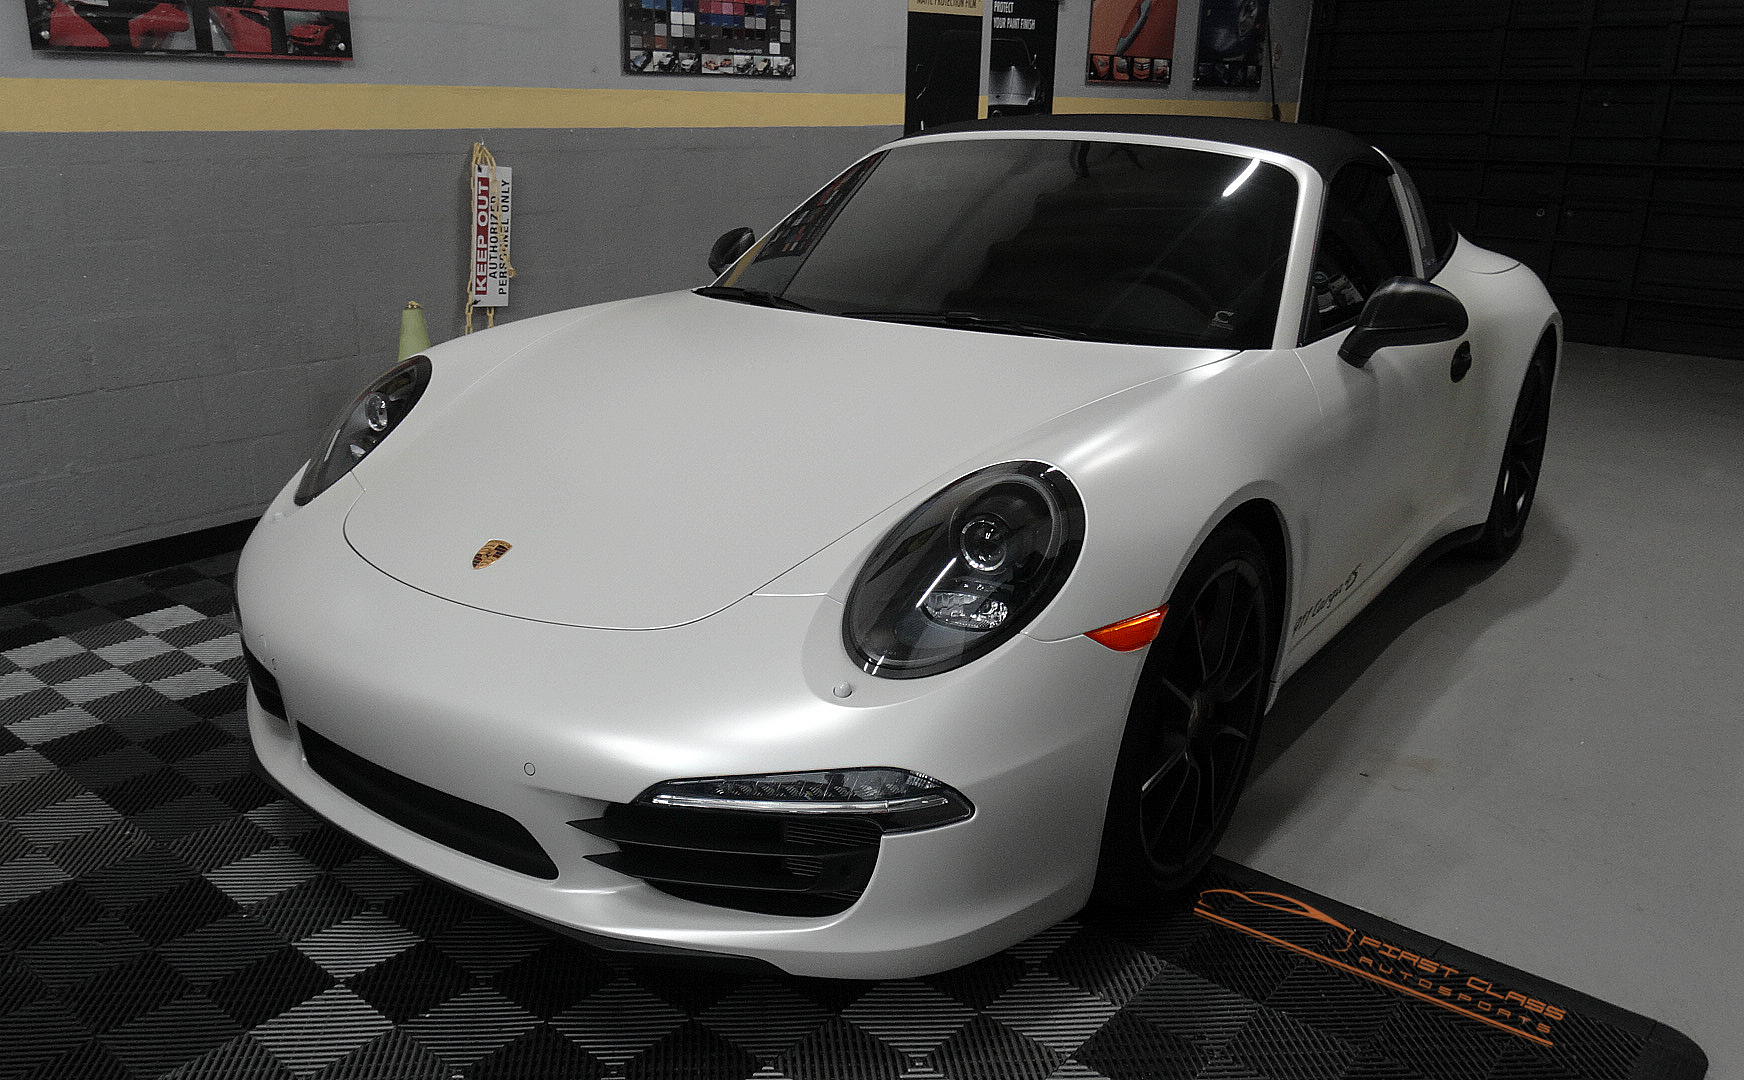 Porsche 911 Targa 4s Awd Full Body Wrapped By First Class